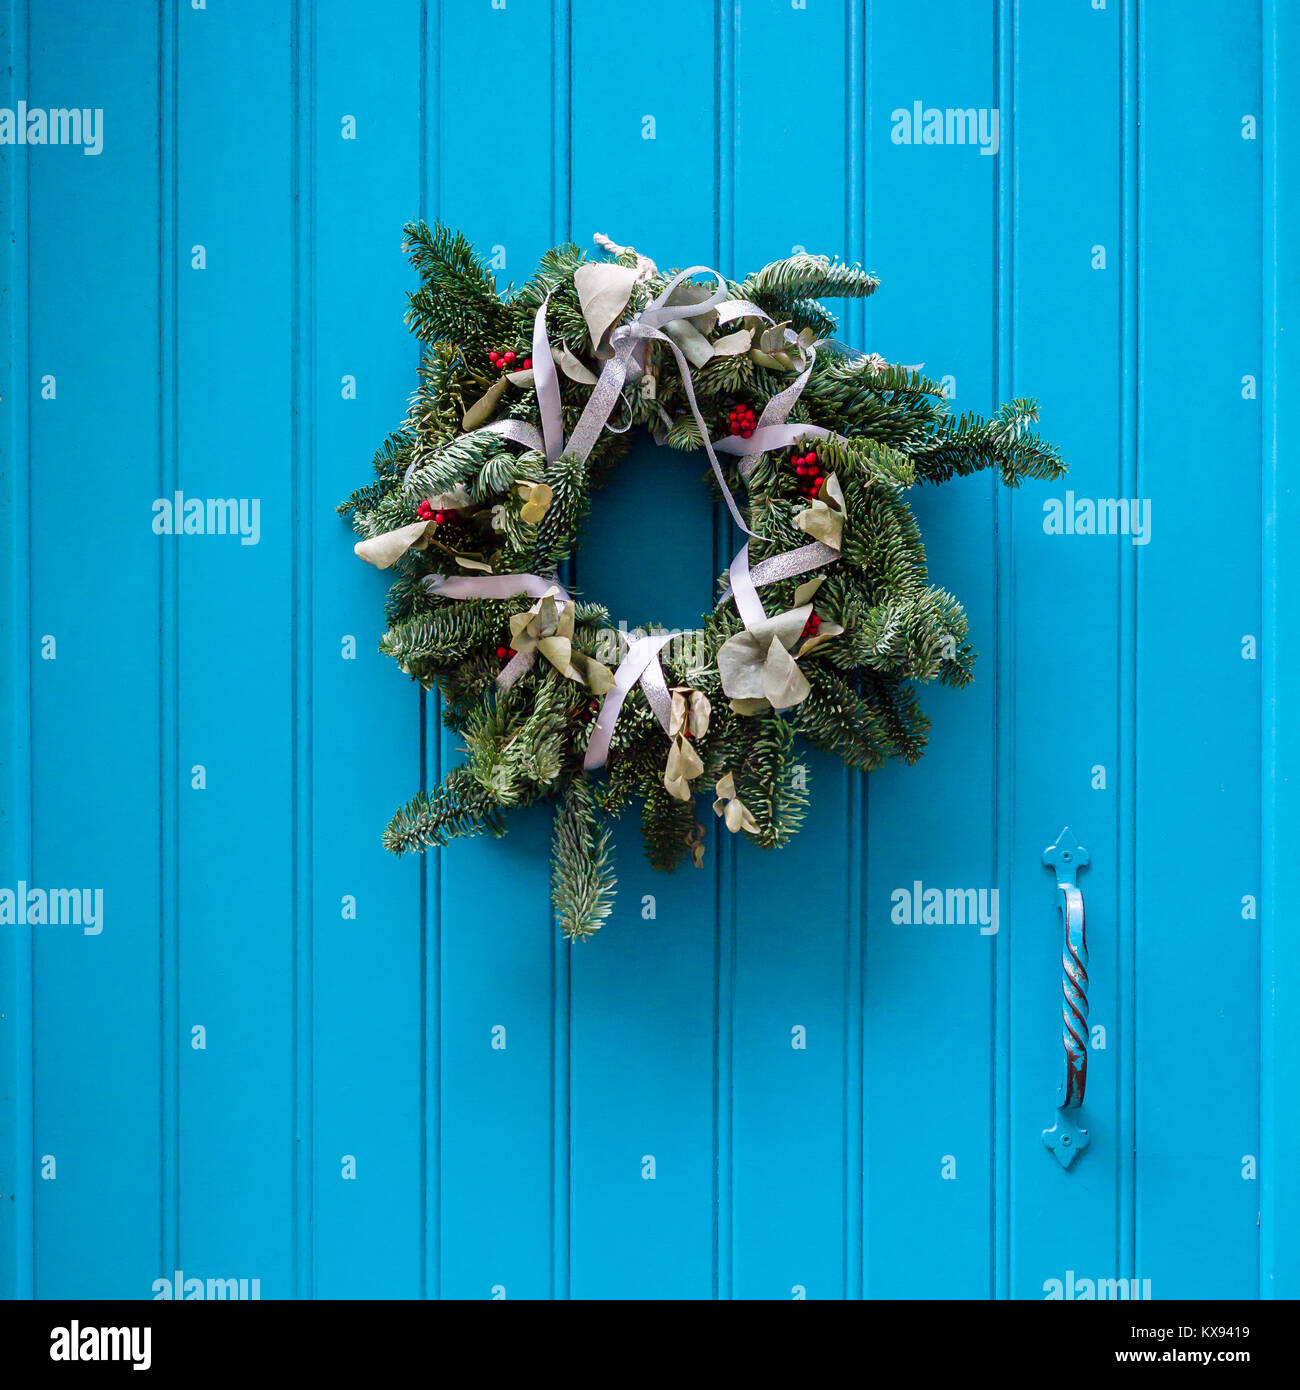 Front View Of A Traditional Christmas Wreath Made Evergreen Branches White Ribbons Holly